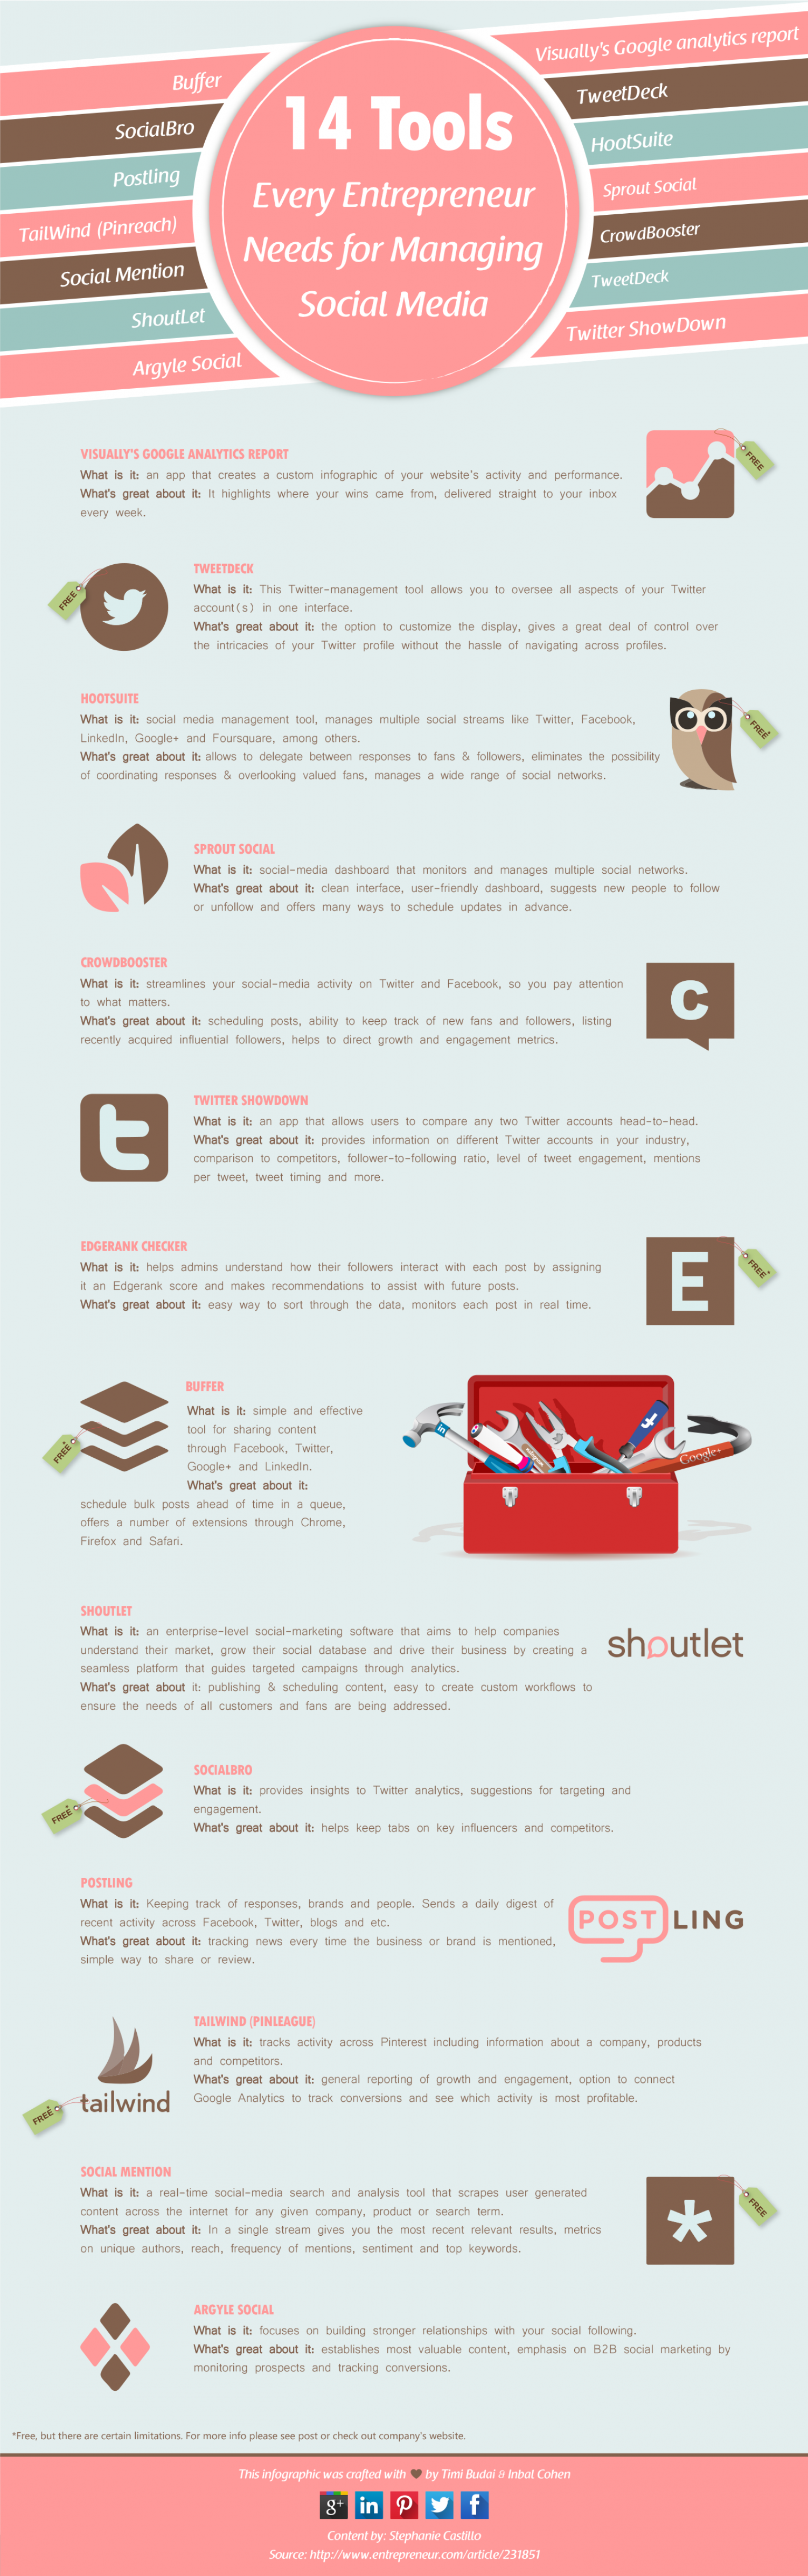 14 Tools Every Entrepreneur Needs for Managing Social Media Infographic